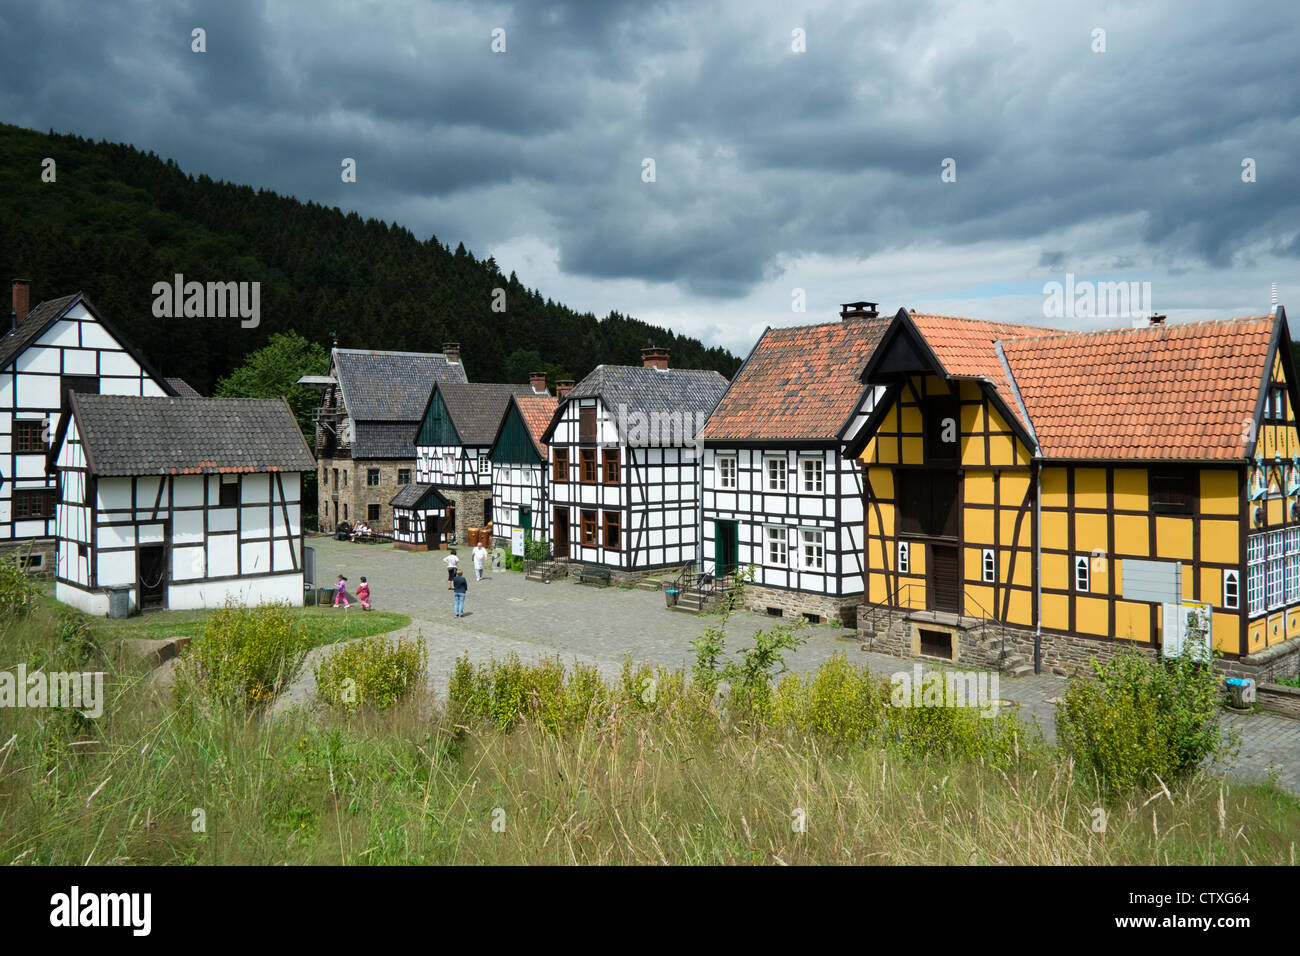 Westphalian open-air museum, or Freilichtmuseum in Hagen, Ruhrgebeit, North Rhine-Westphalia, Germany Stock Photo